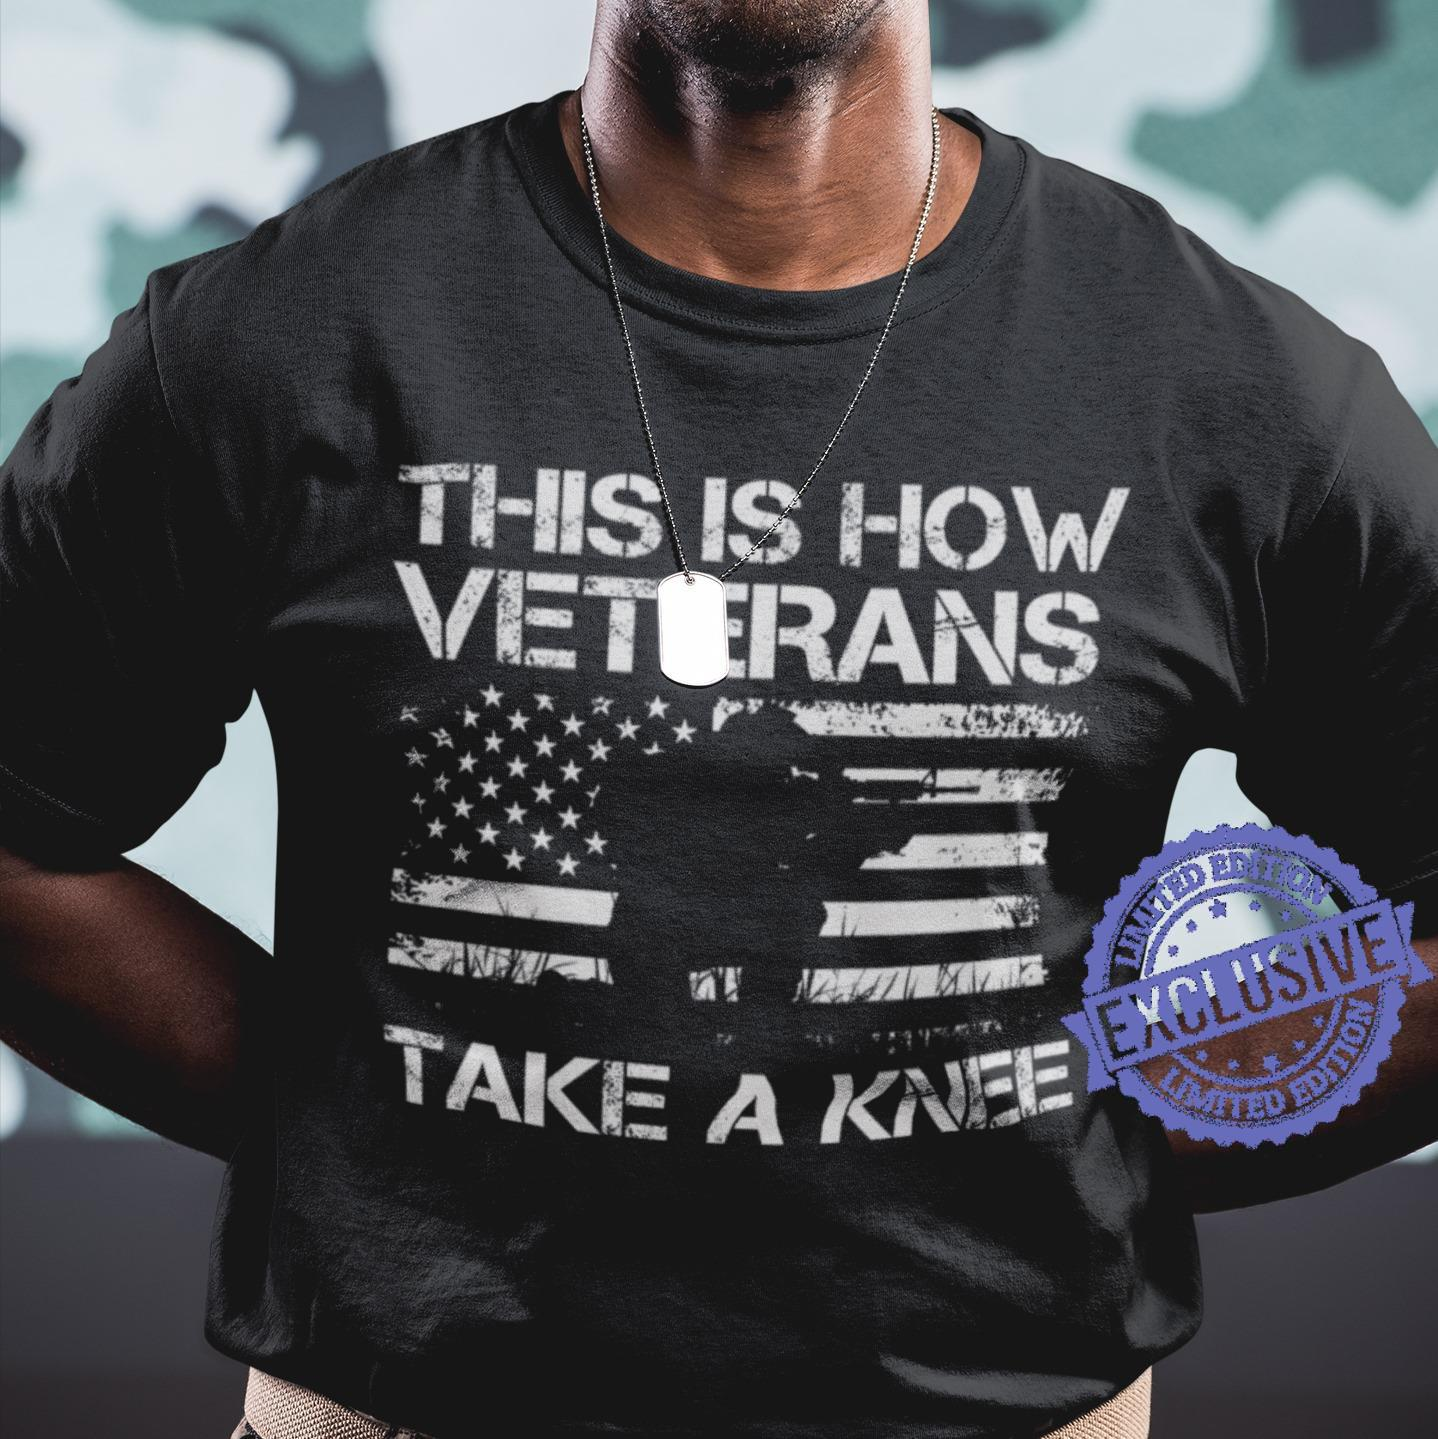 This is how veterans take a knee shirt